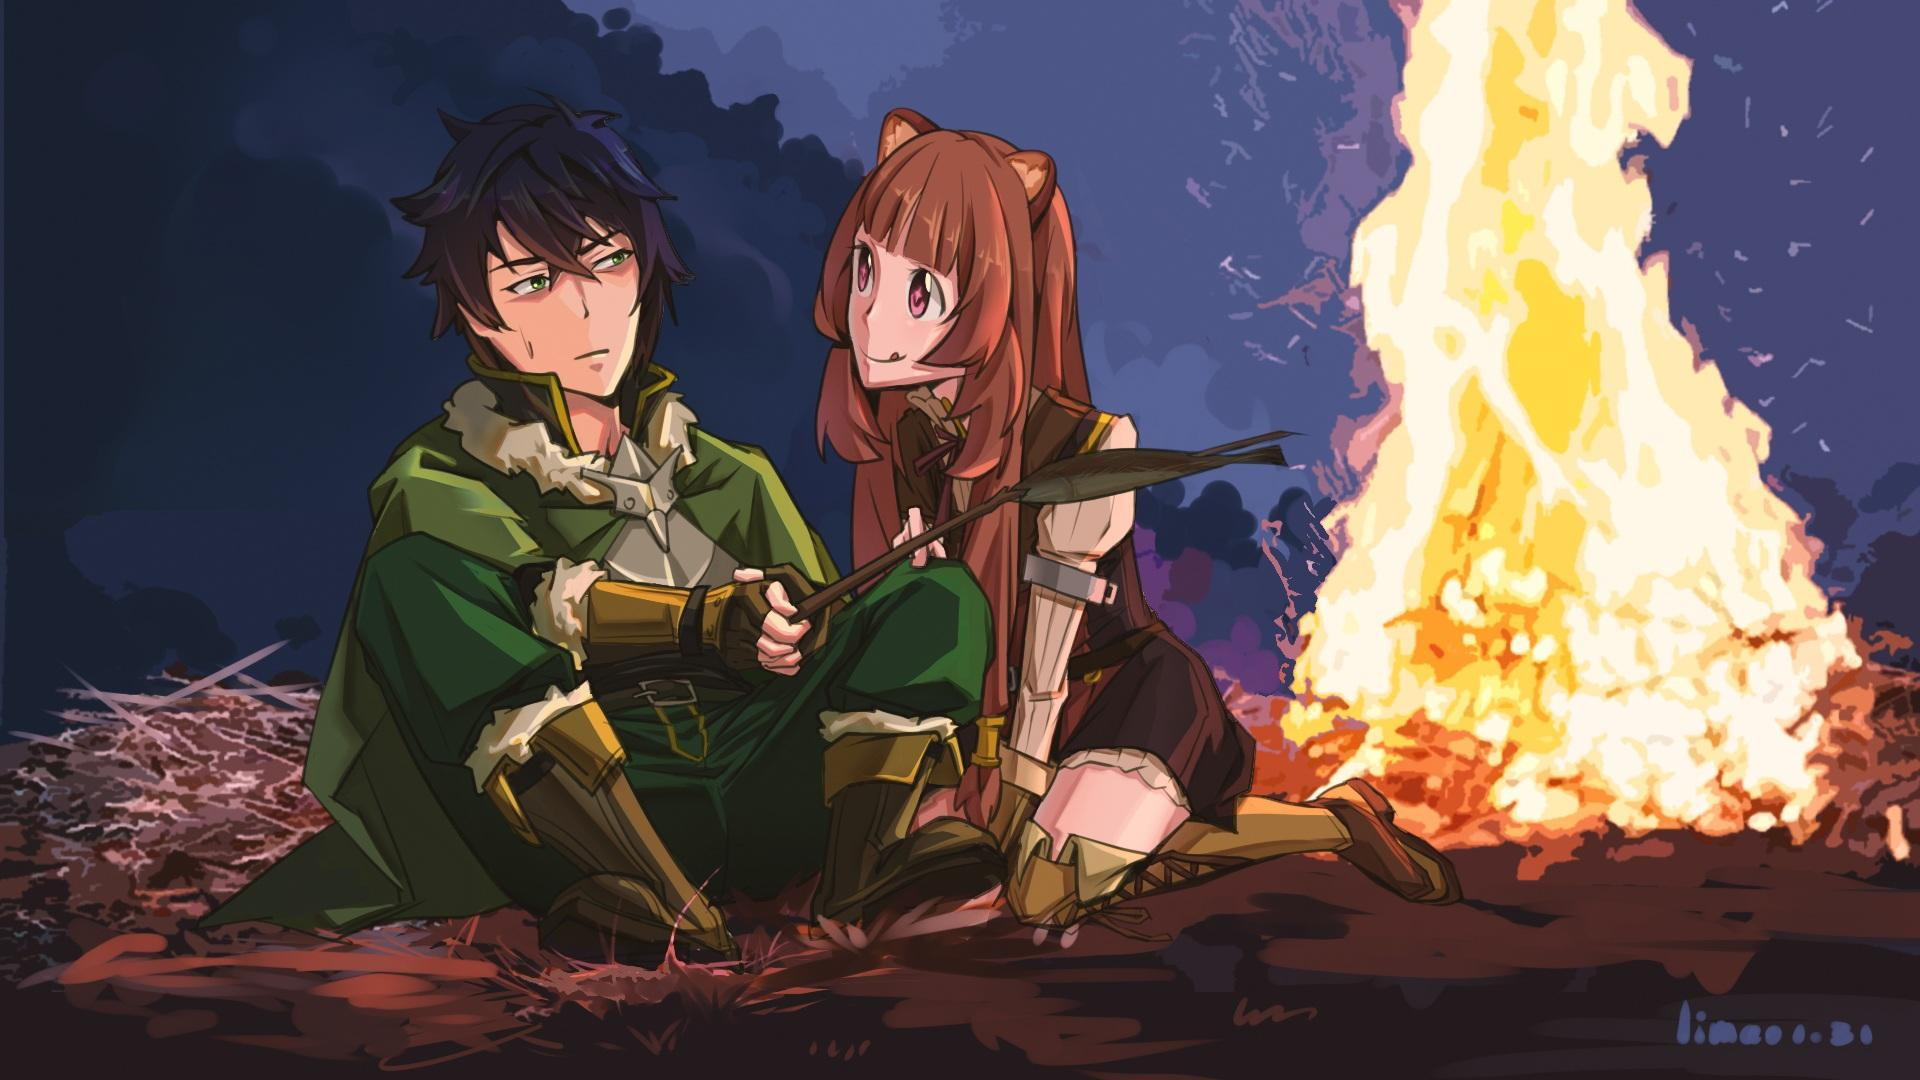 Iwatani Naofumi, of the shield hero,